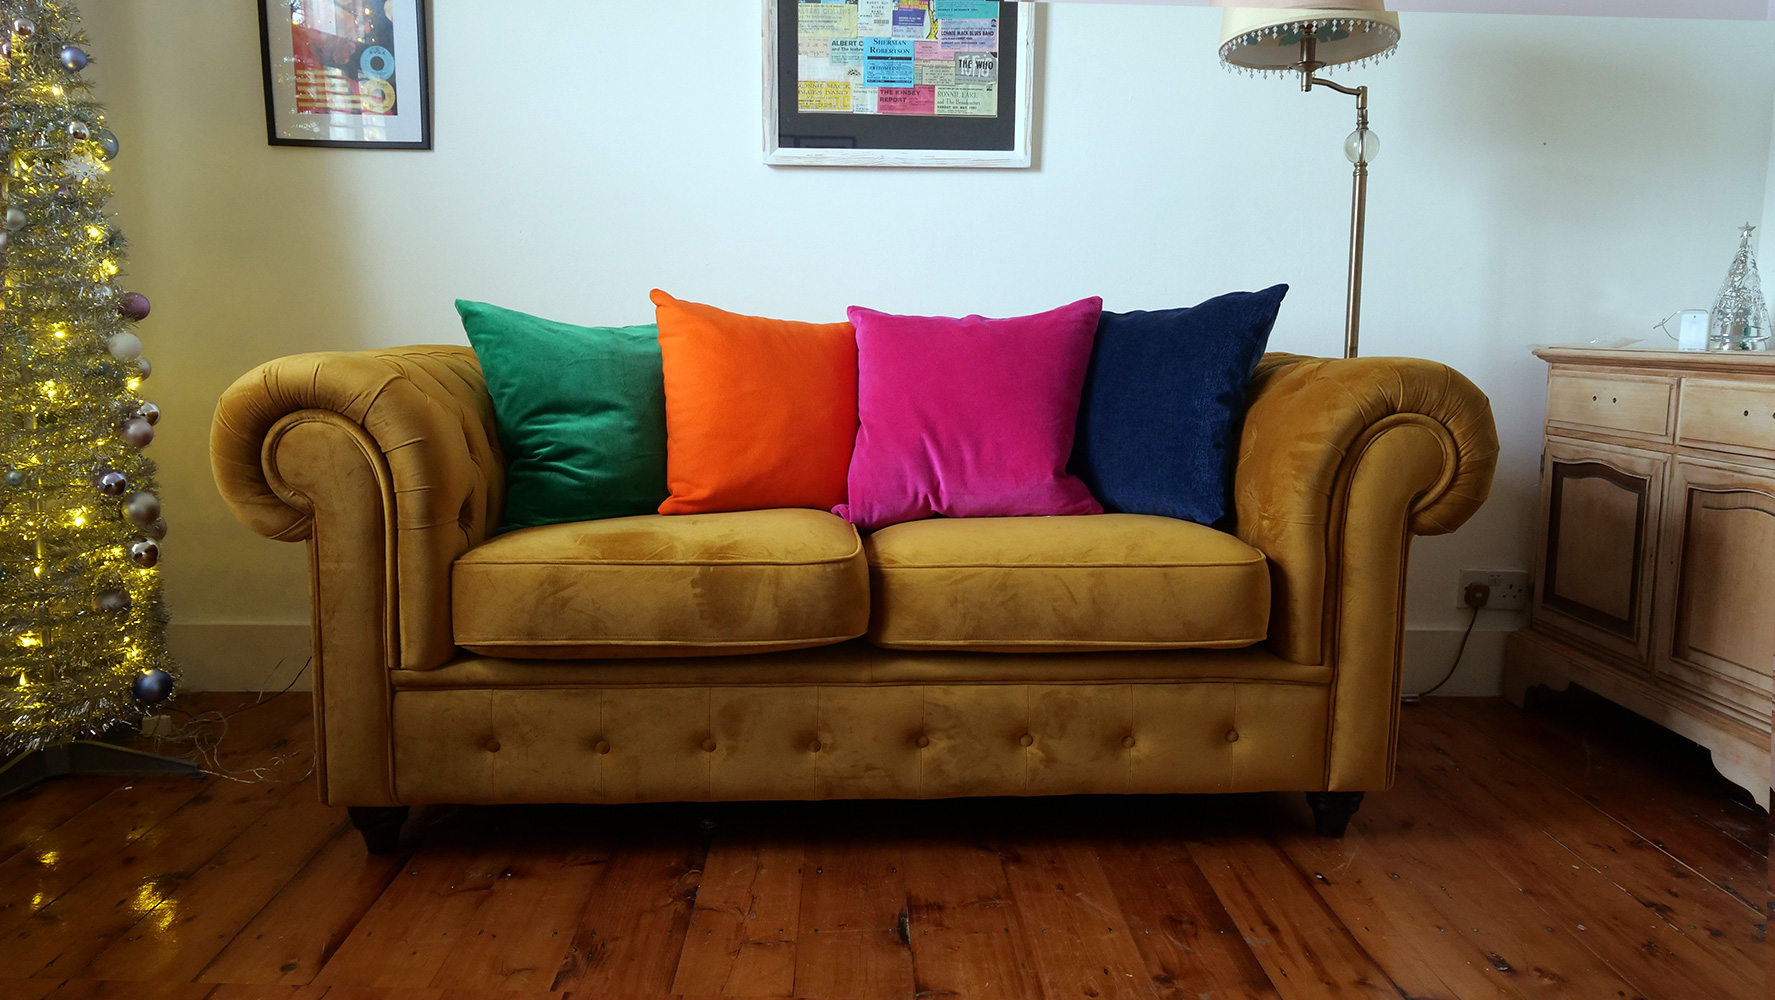 Chesterfield Max 2-seater sofa in mustard color